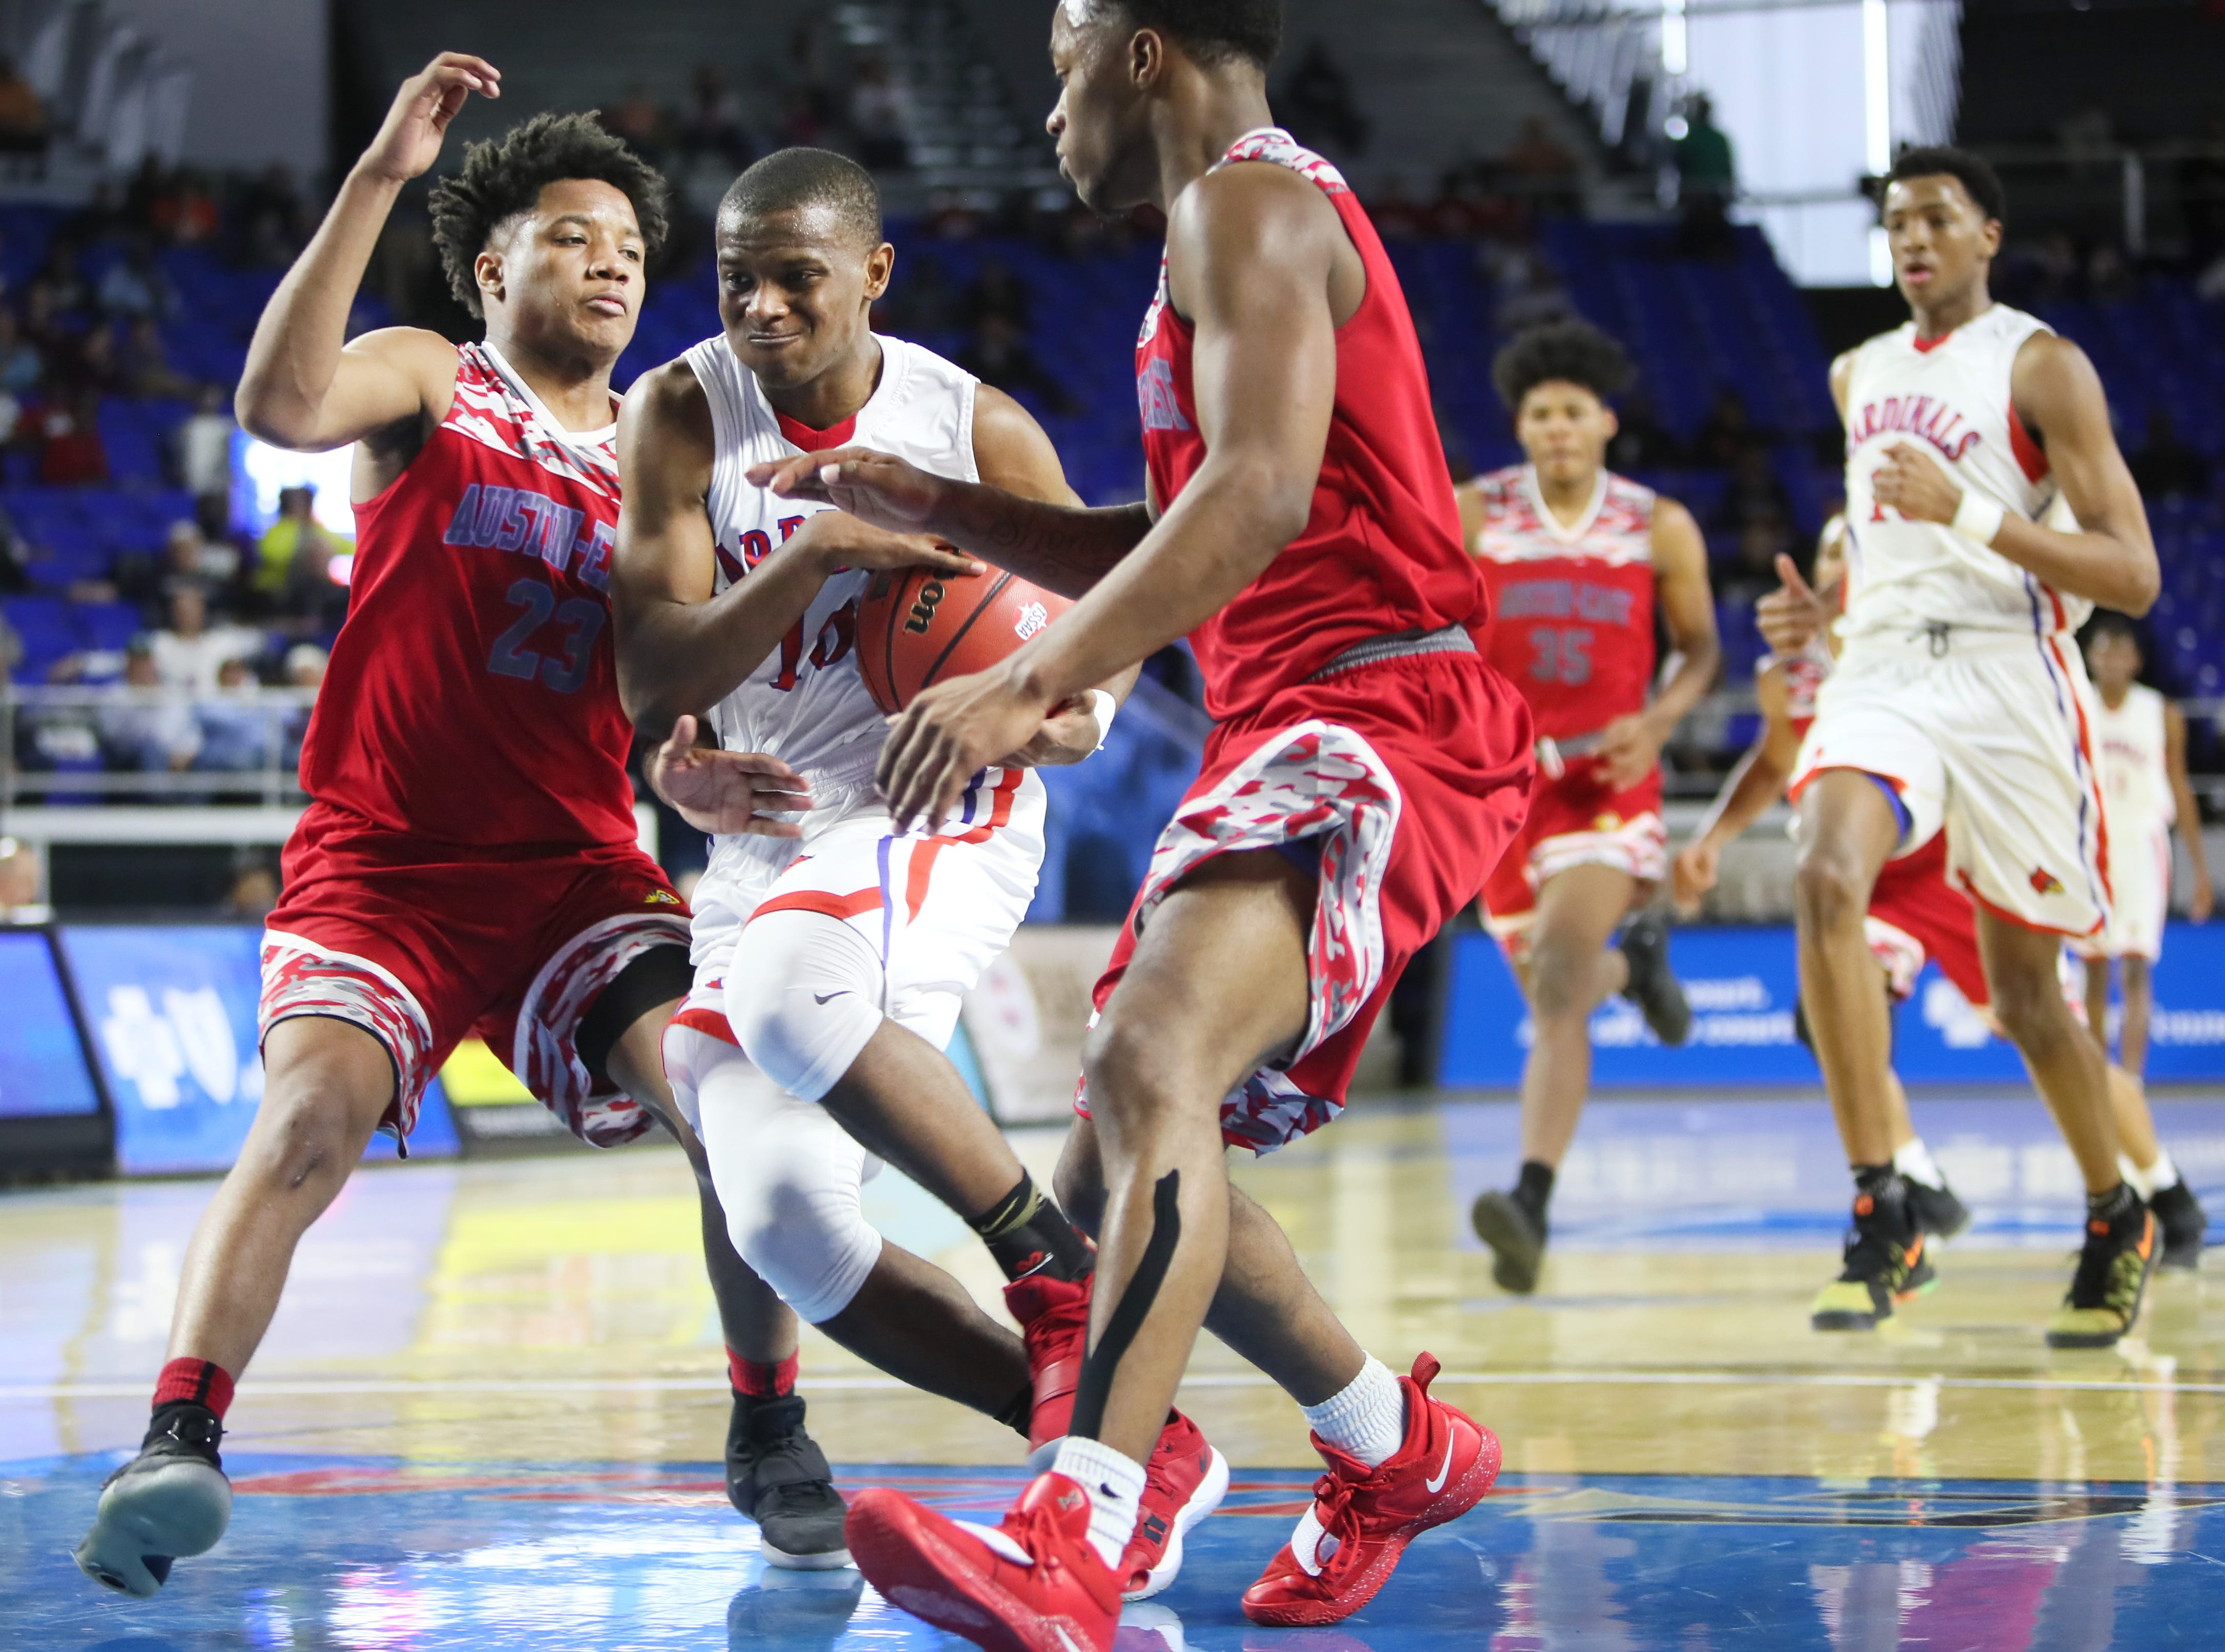 Wooddale's Jonathan Duncan drives betweeen Austin-East's Laron Dixon, left, and Ronney Pierson during the TSSAA Division I basketball state tournament in Murfreesboro on Wednesday, March 13, 2019.